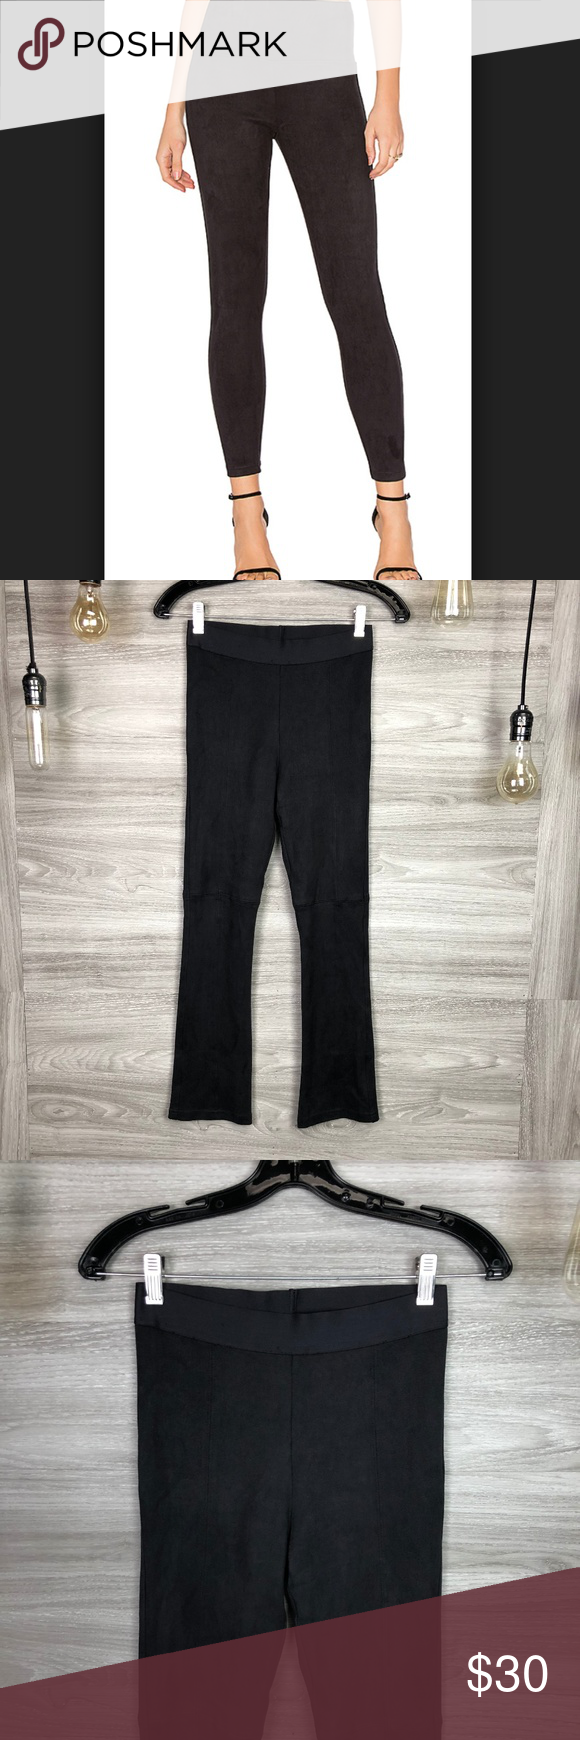 4add0fedba354 David Lerner Black Faux Suede Legging Size Small New with tags Measurements  (in inches and laid flat): Waist: 12 1/2 Rise: 9 3/4 Inseam: 26 Outseam: 35  Leg ...